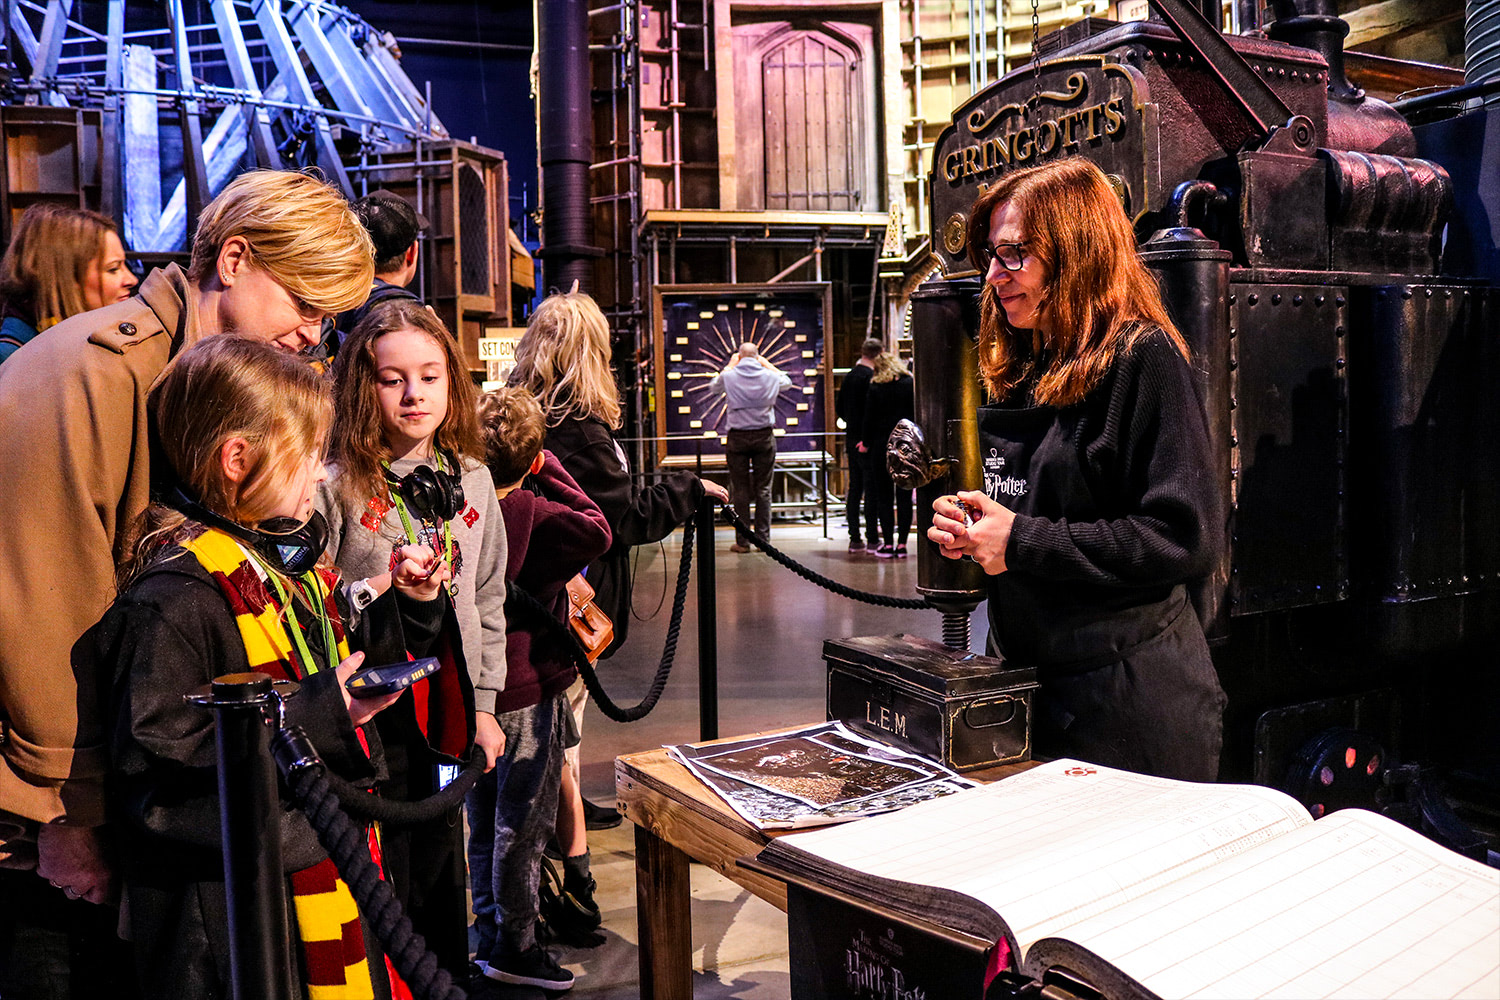 Gringotts at the 'Harry Potter' studio tour